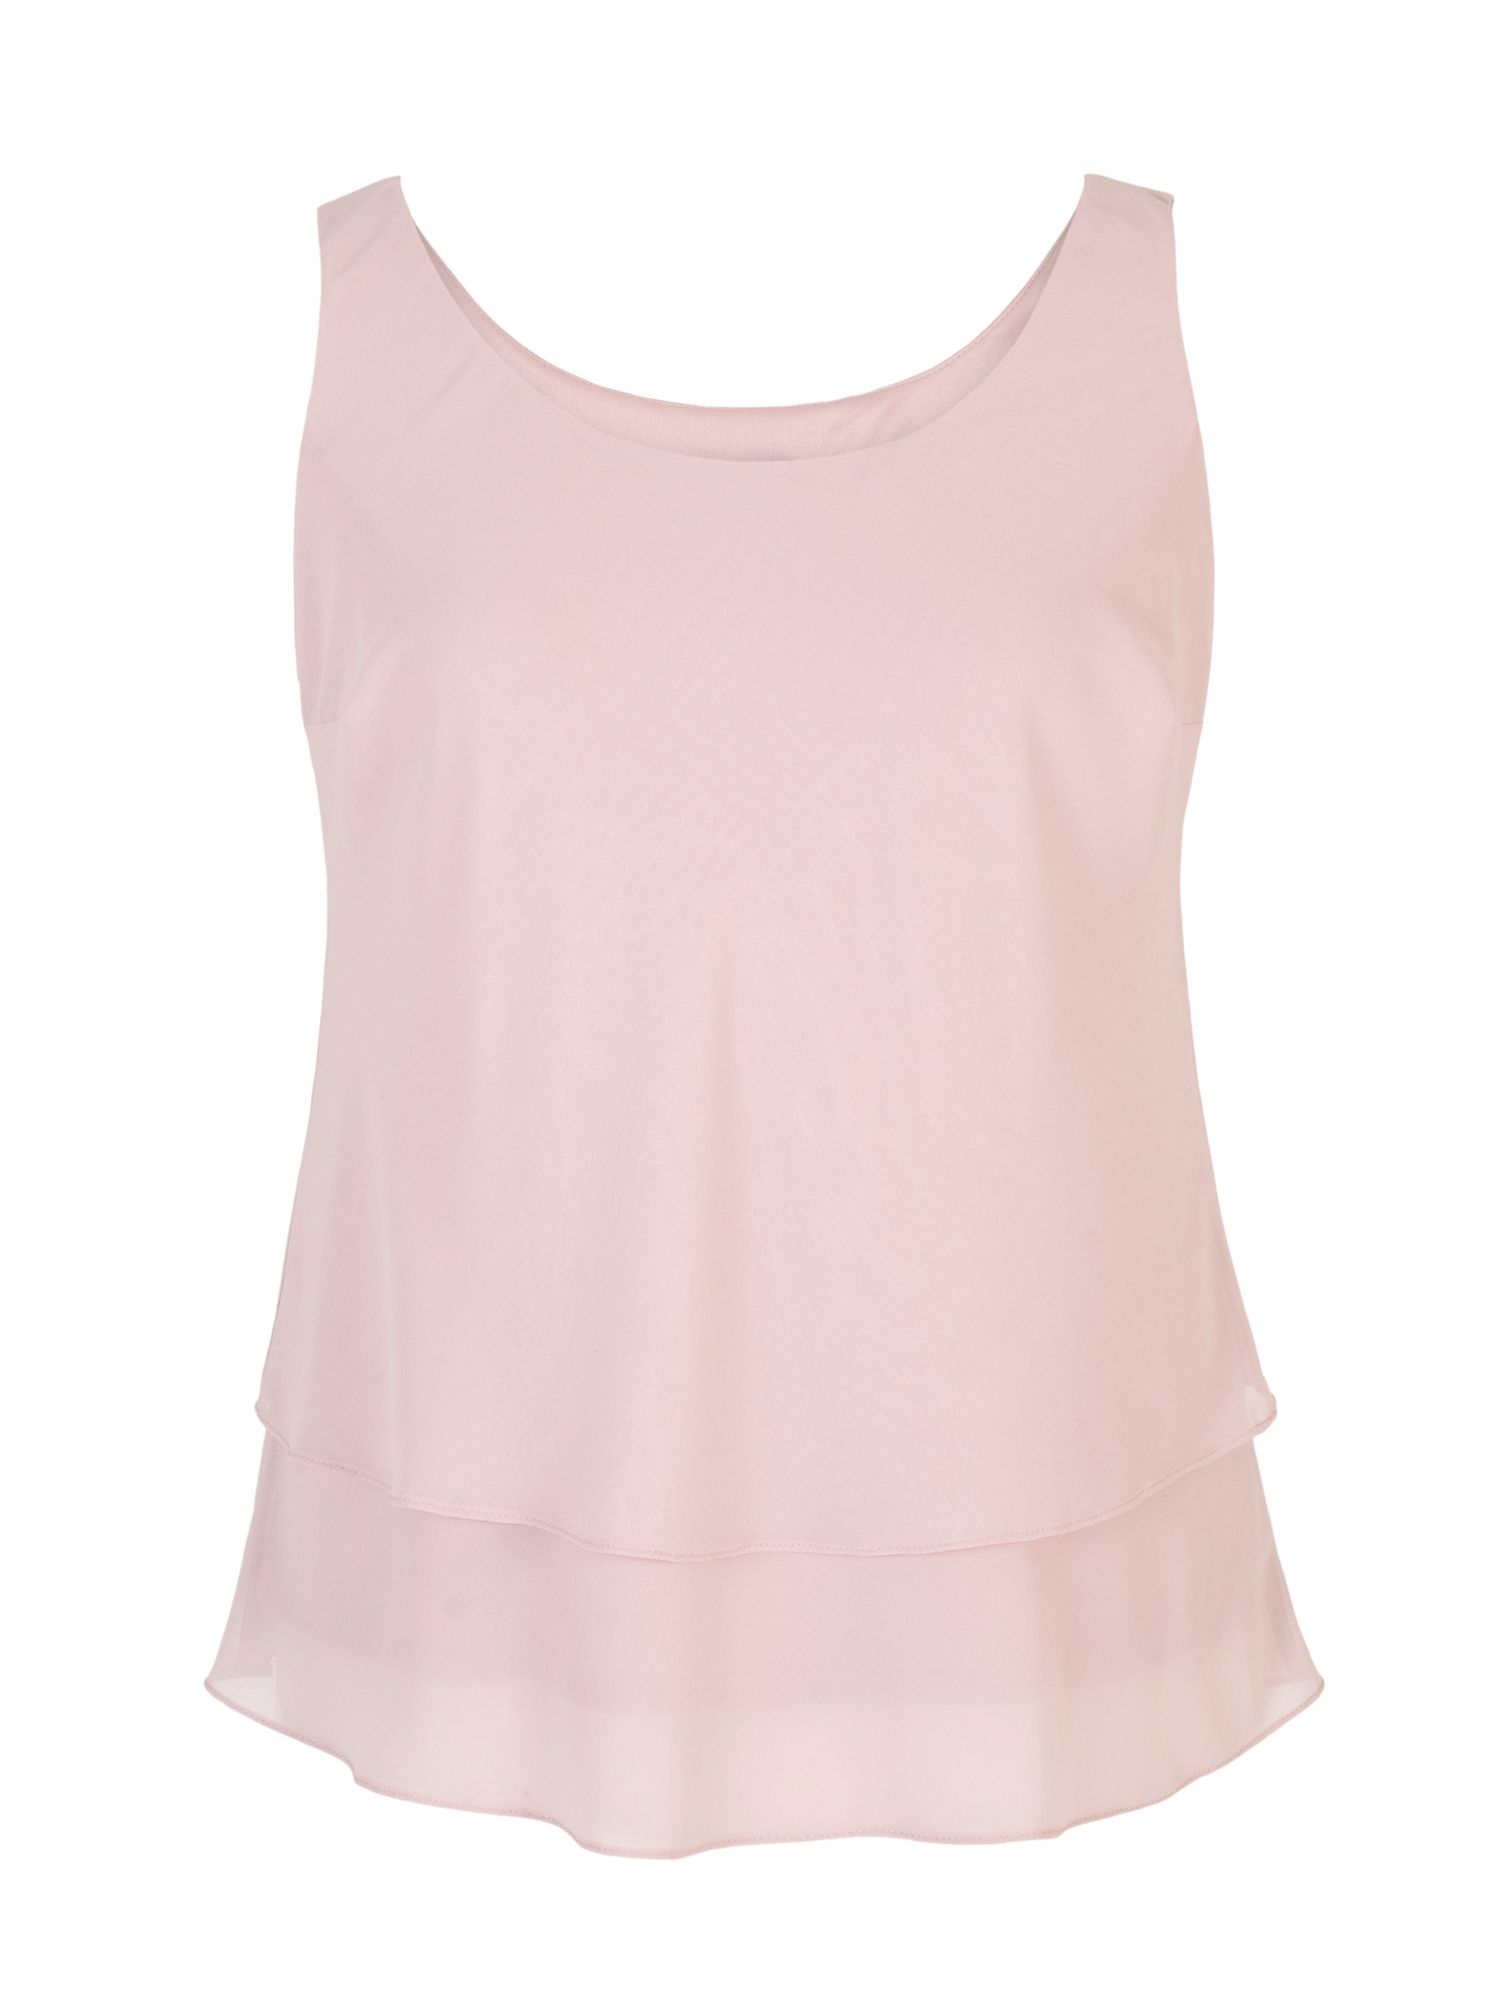 Chesca Double Layer Chiffon Camisole, Pink